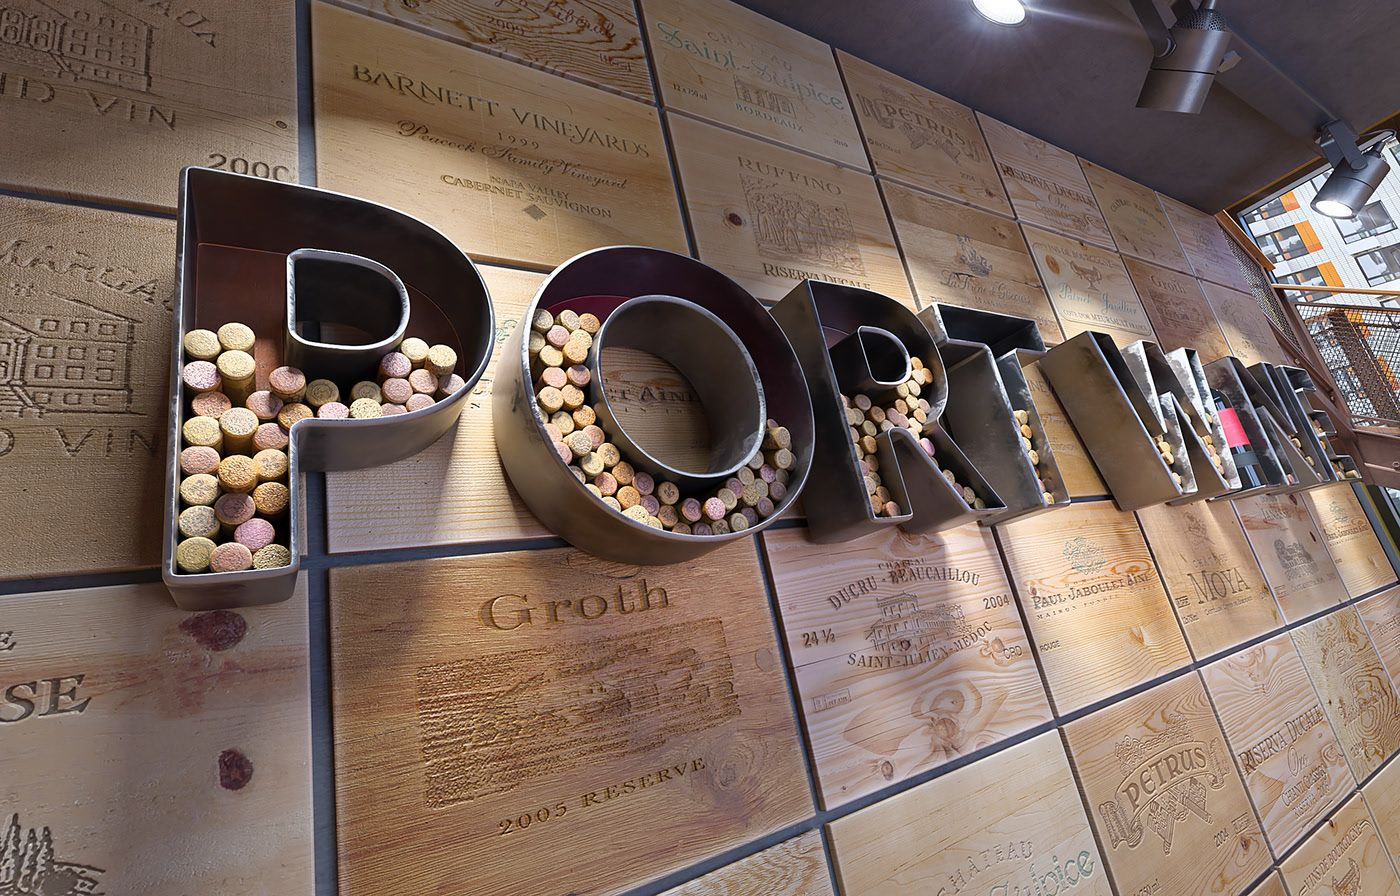 PORTWINE on Behance in 2020 Cafe interior, Restaurant, Cafe